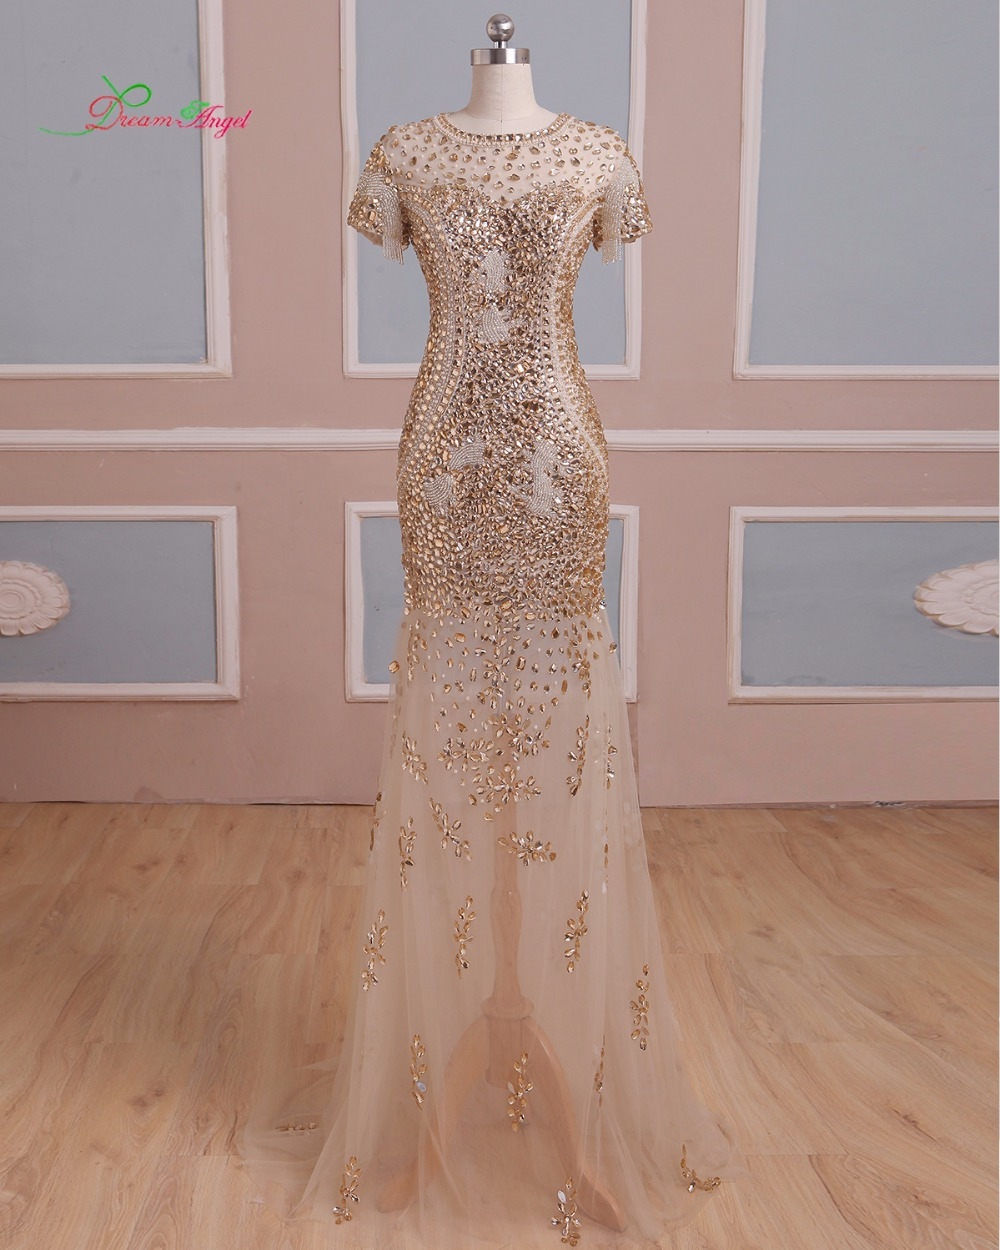 Fmogl Elegant Beading Crystal Long Mermaid   Prom     Dresses   2019 Luxury Sweep Train Vintage Trumpet Vestido De Festa Plus Size